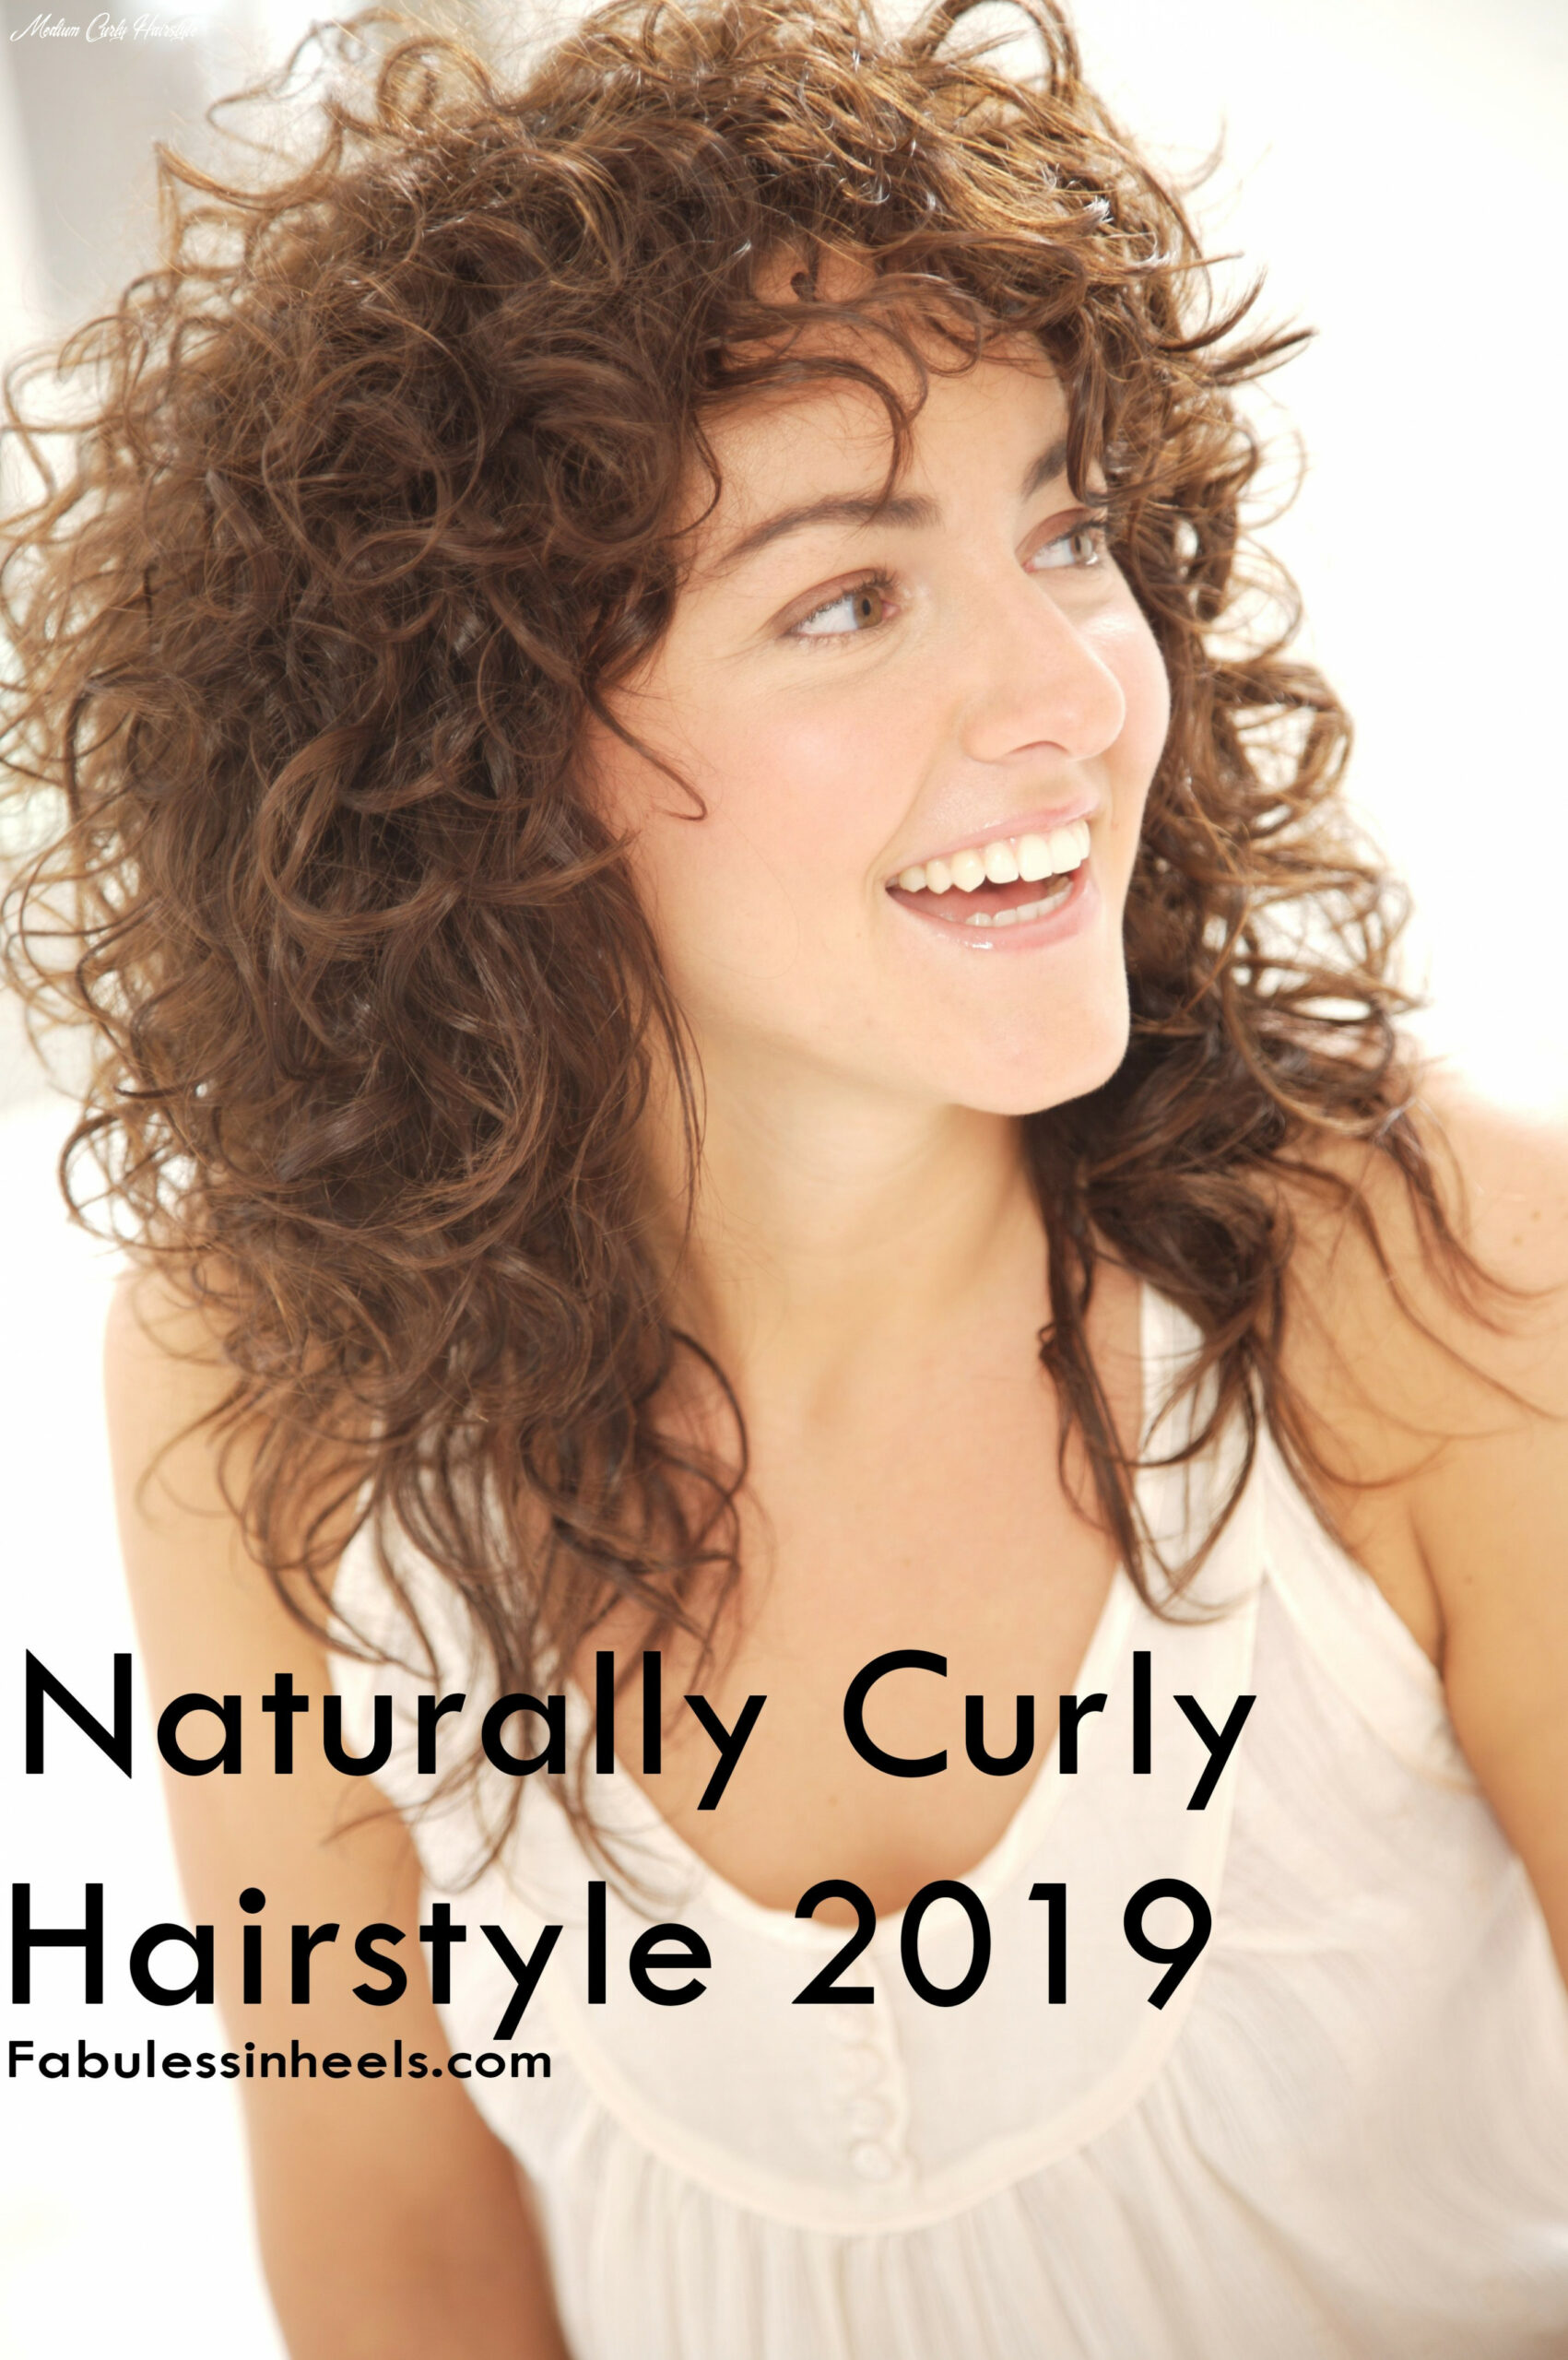 Naturally curly hair 9 for womens with medium length #hairstyle